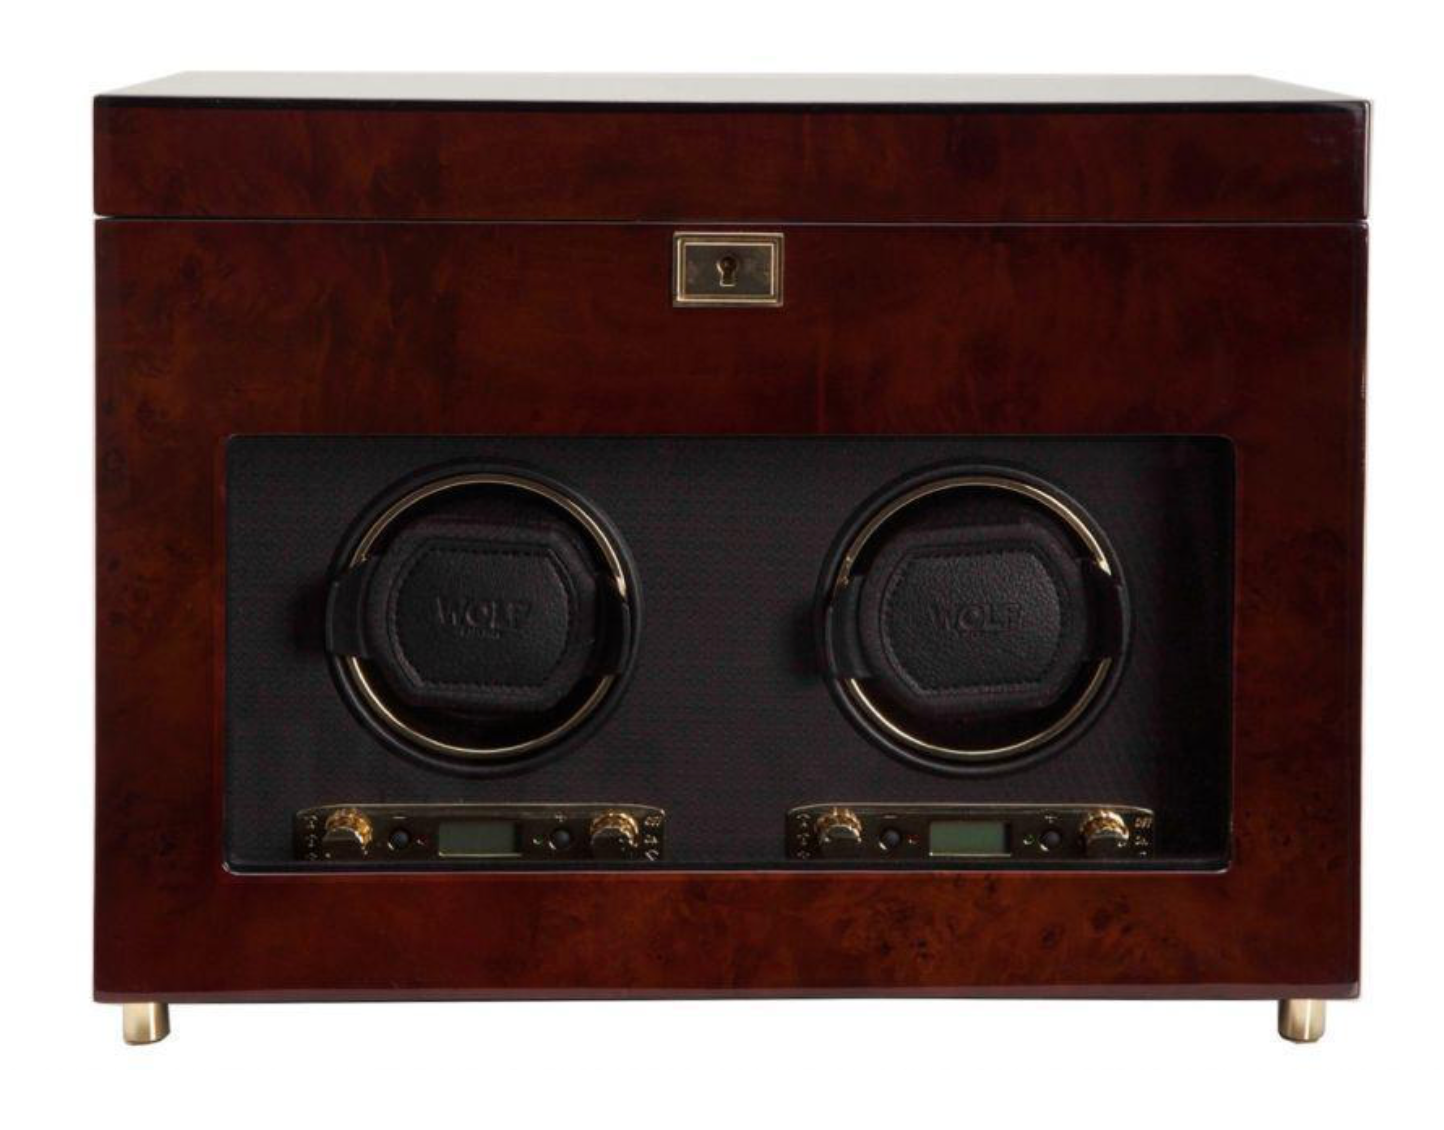 WOLF Savoy Double Watch Winder